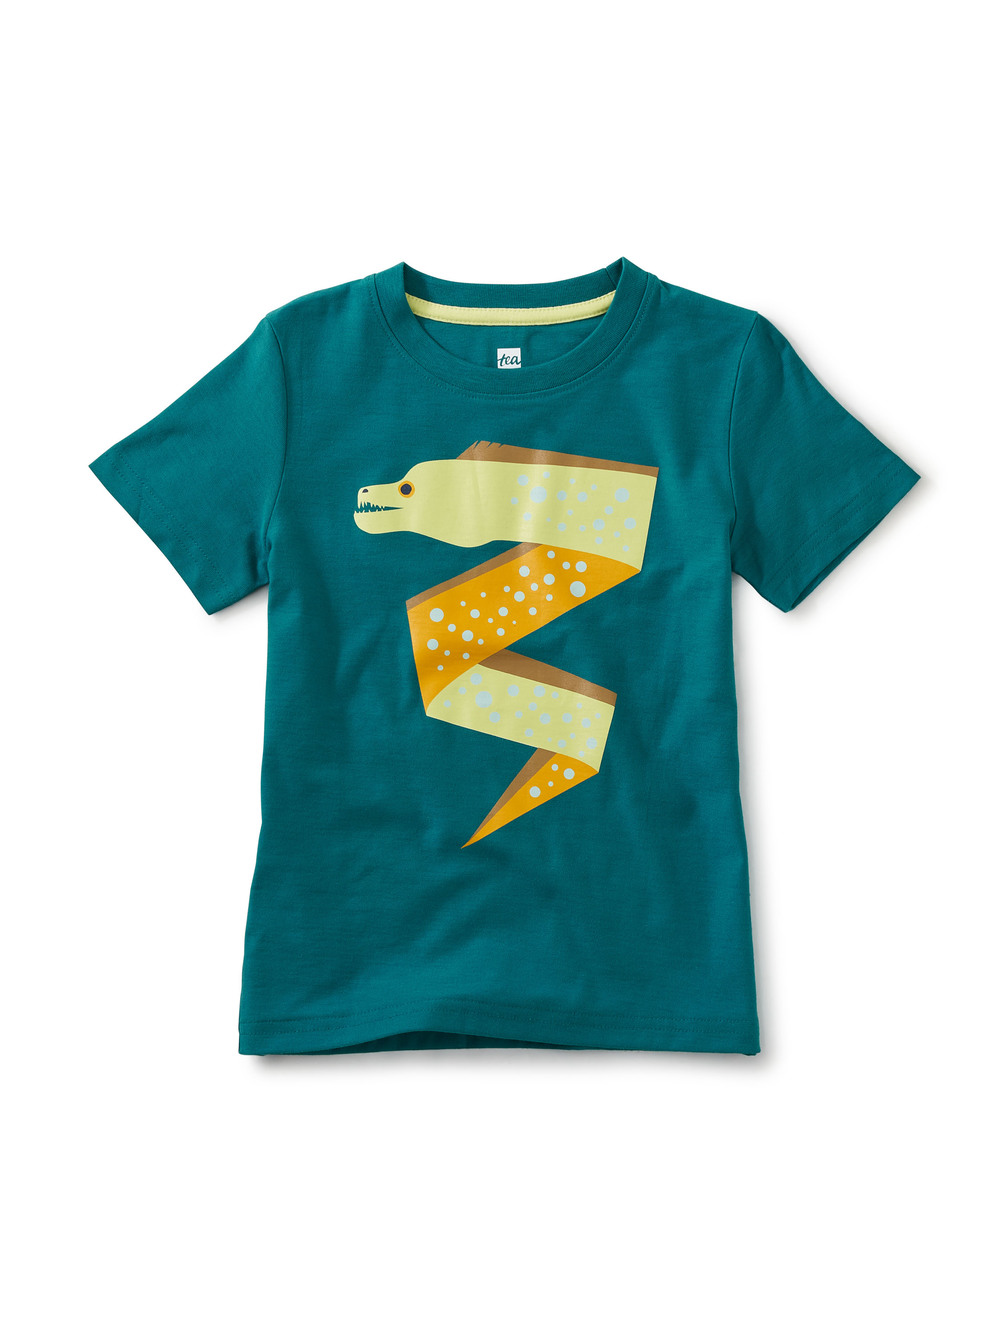 It's Electric Graphic Tee